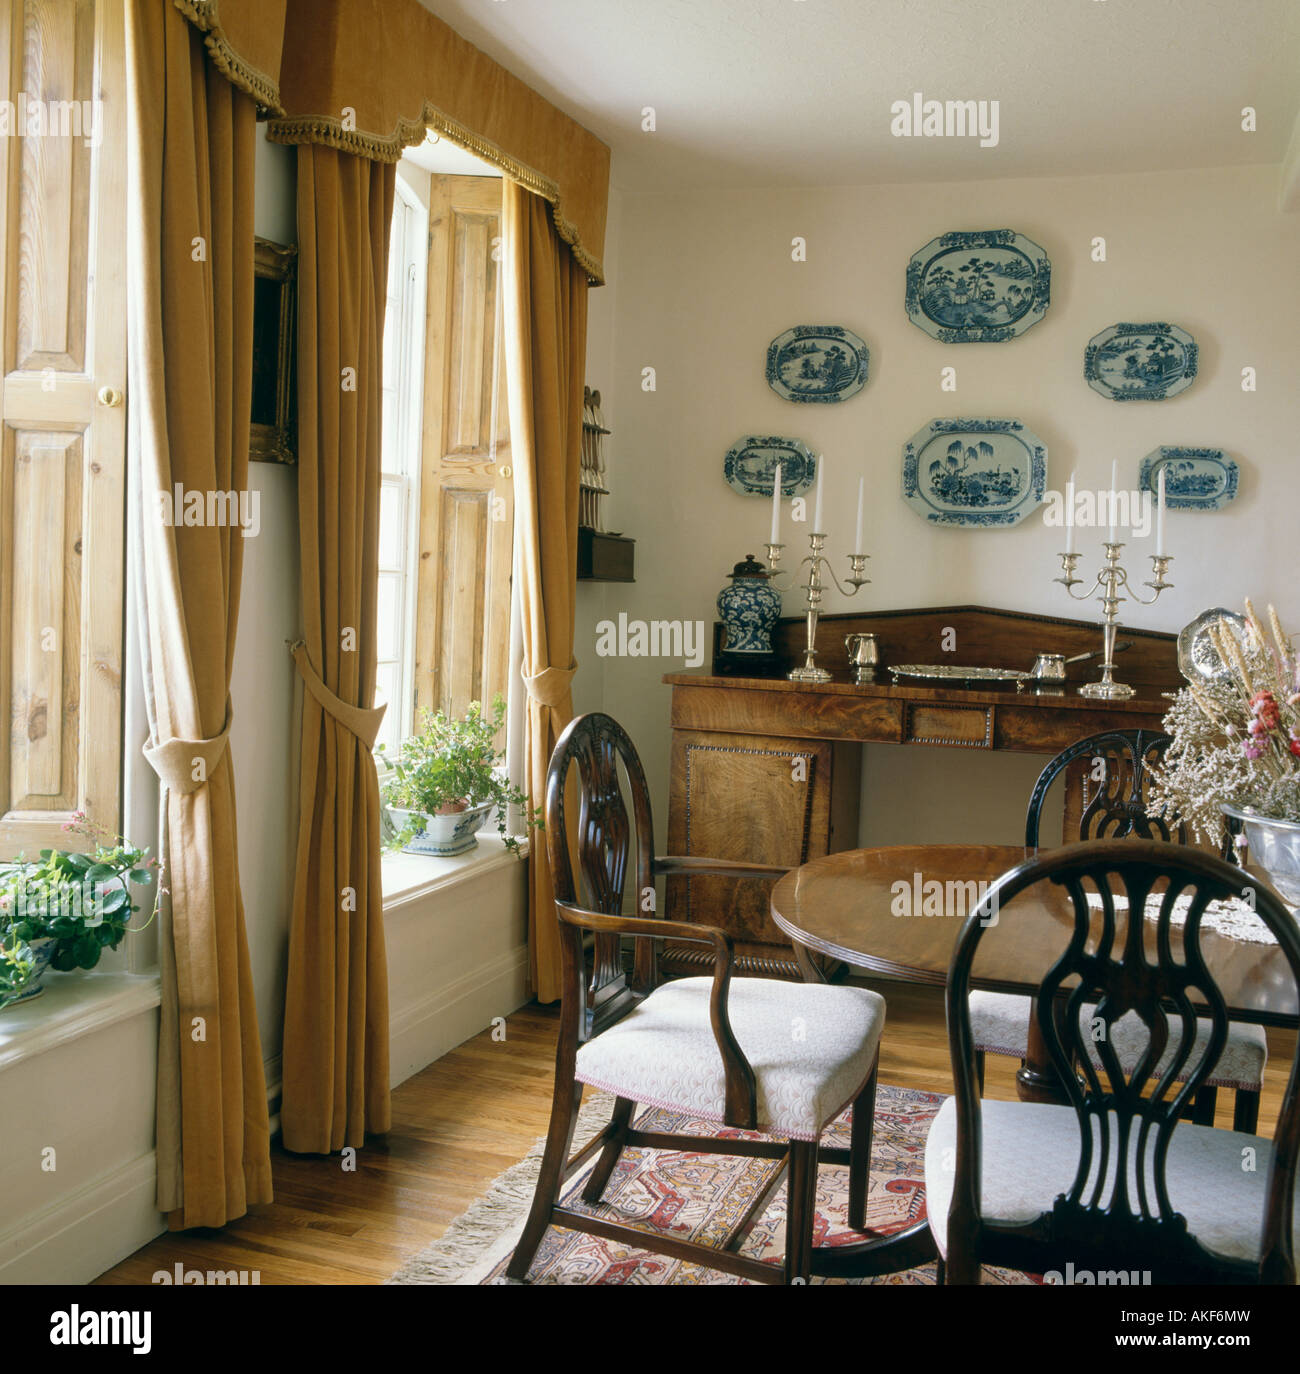 Blue And White Plates Above Antique Sideboard In Country Dining Room With  Gold Velvet Curtains And Wooden Shutters